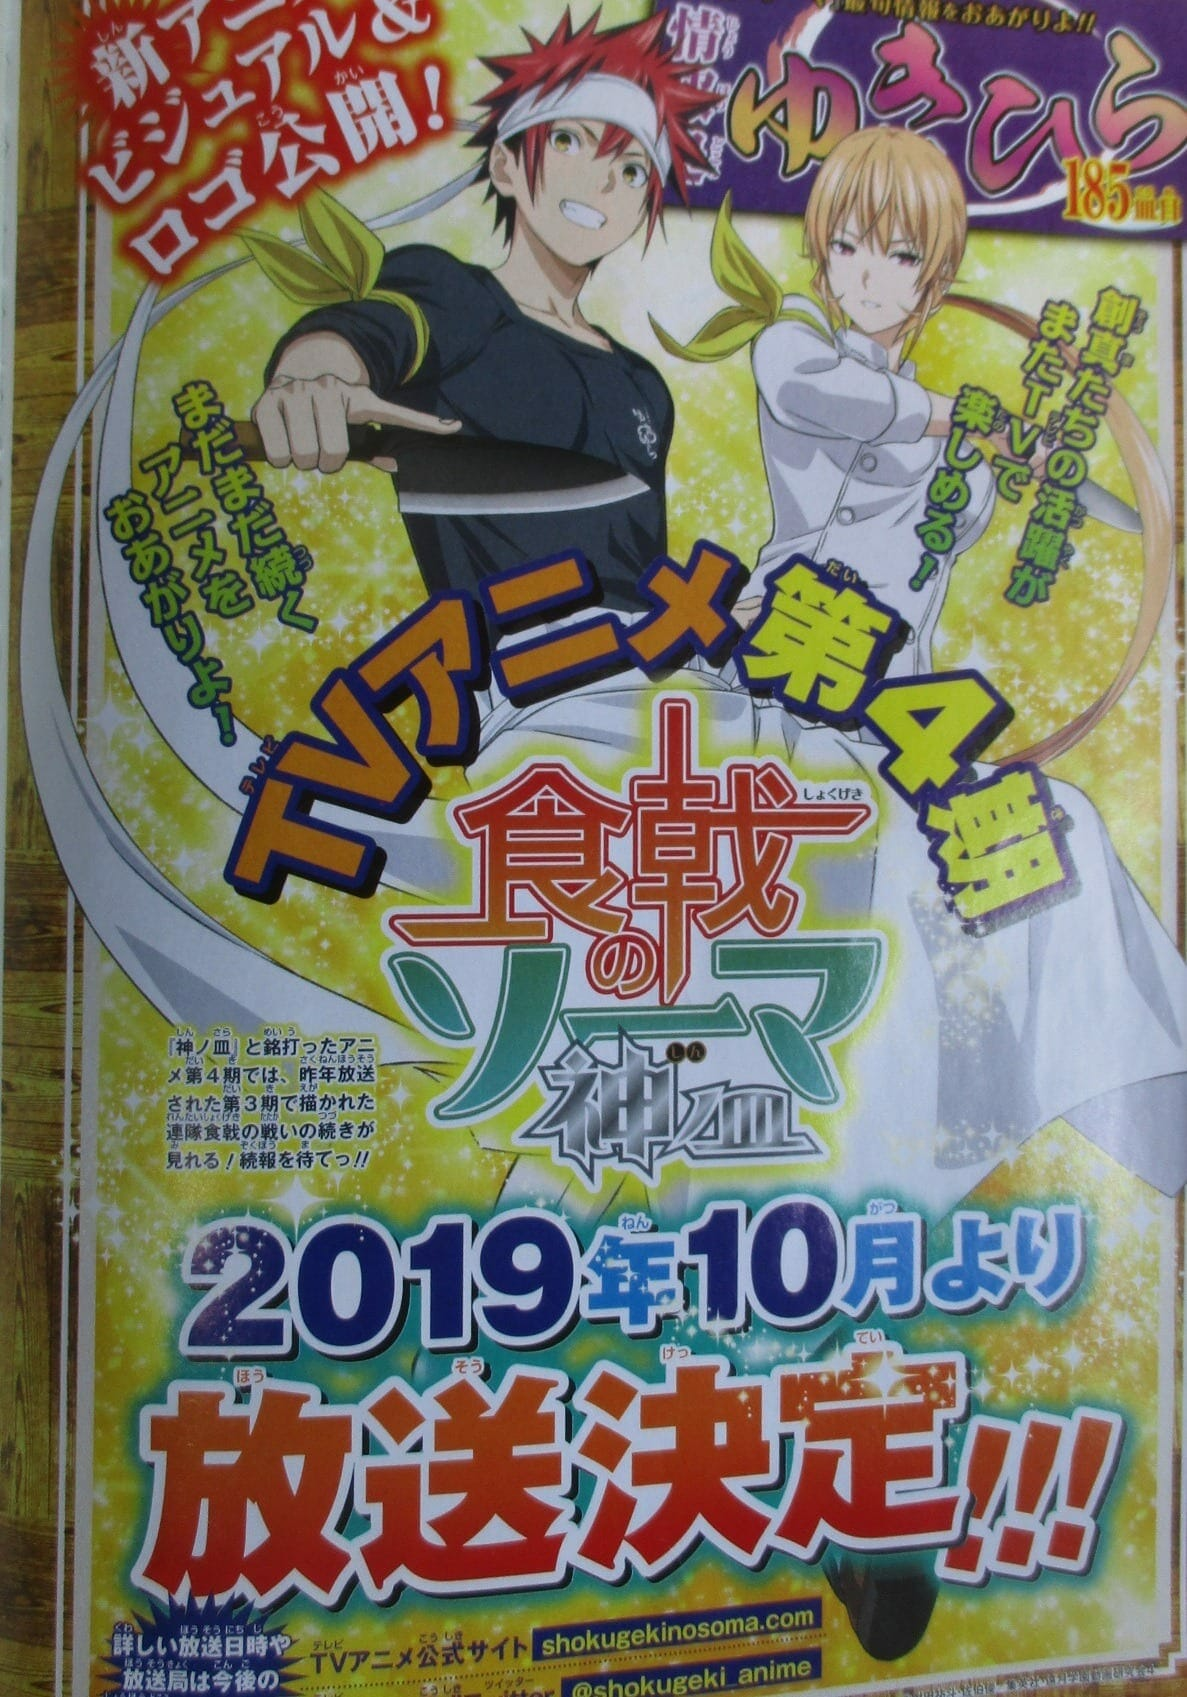 Shokugeki no Souma season 4 announcement